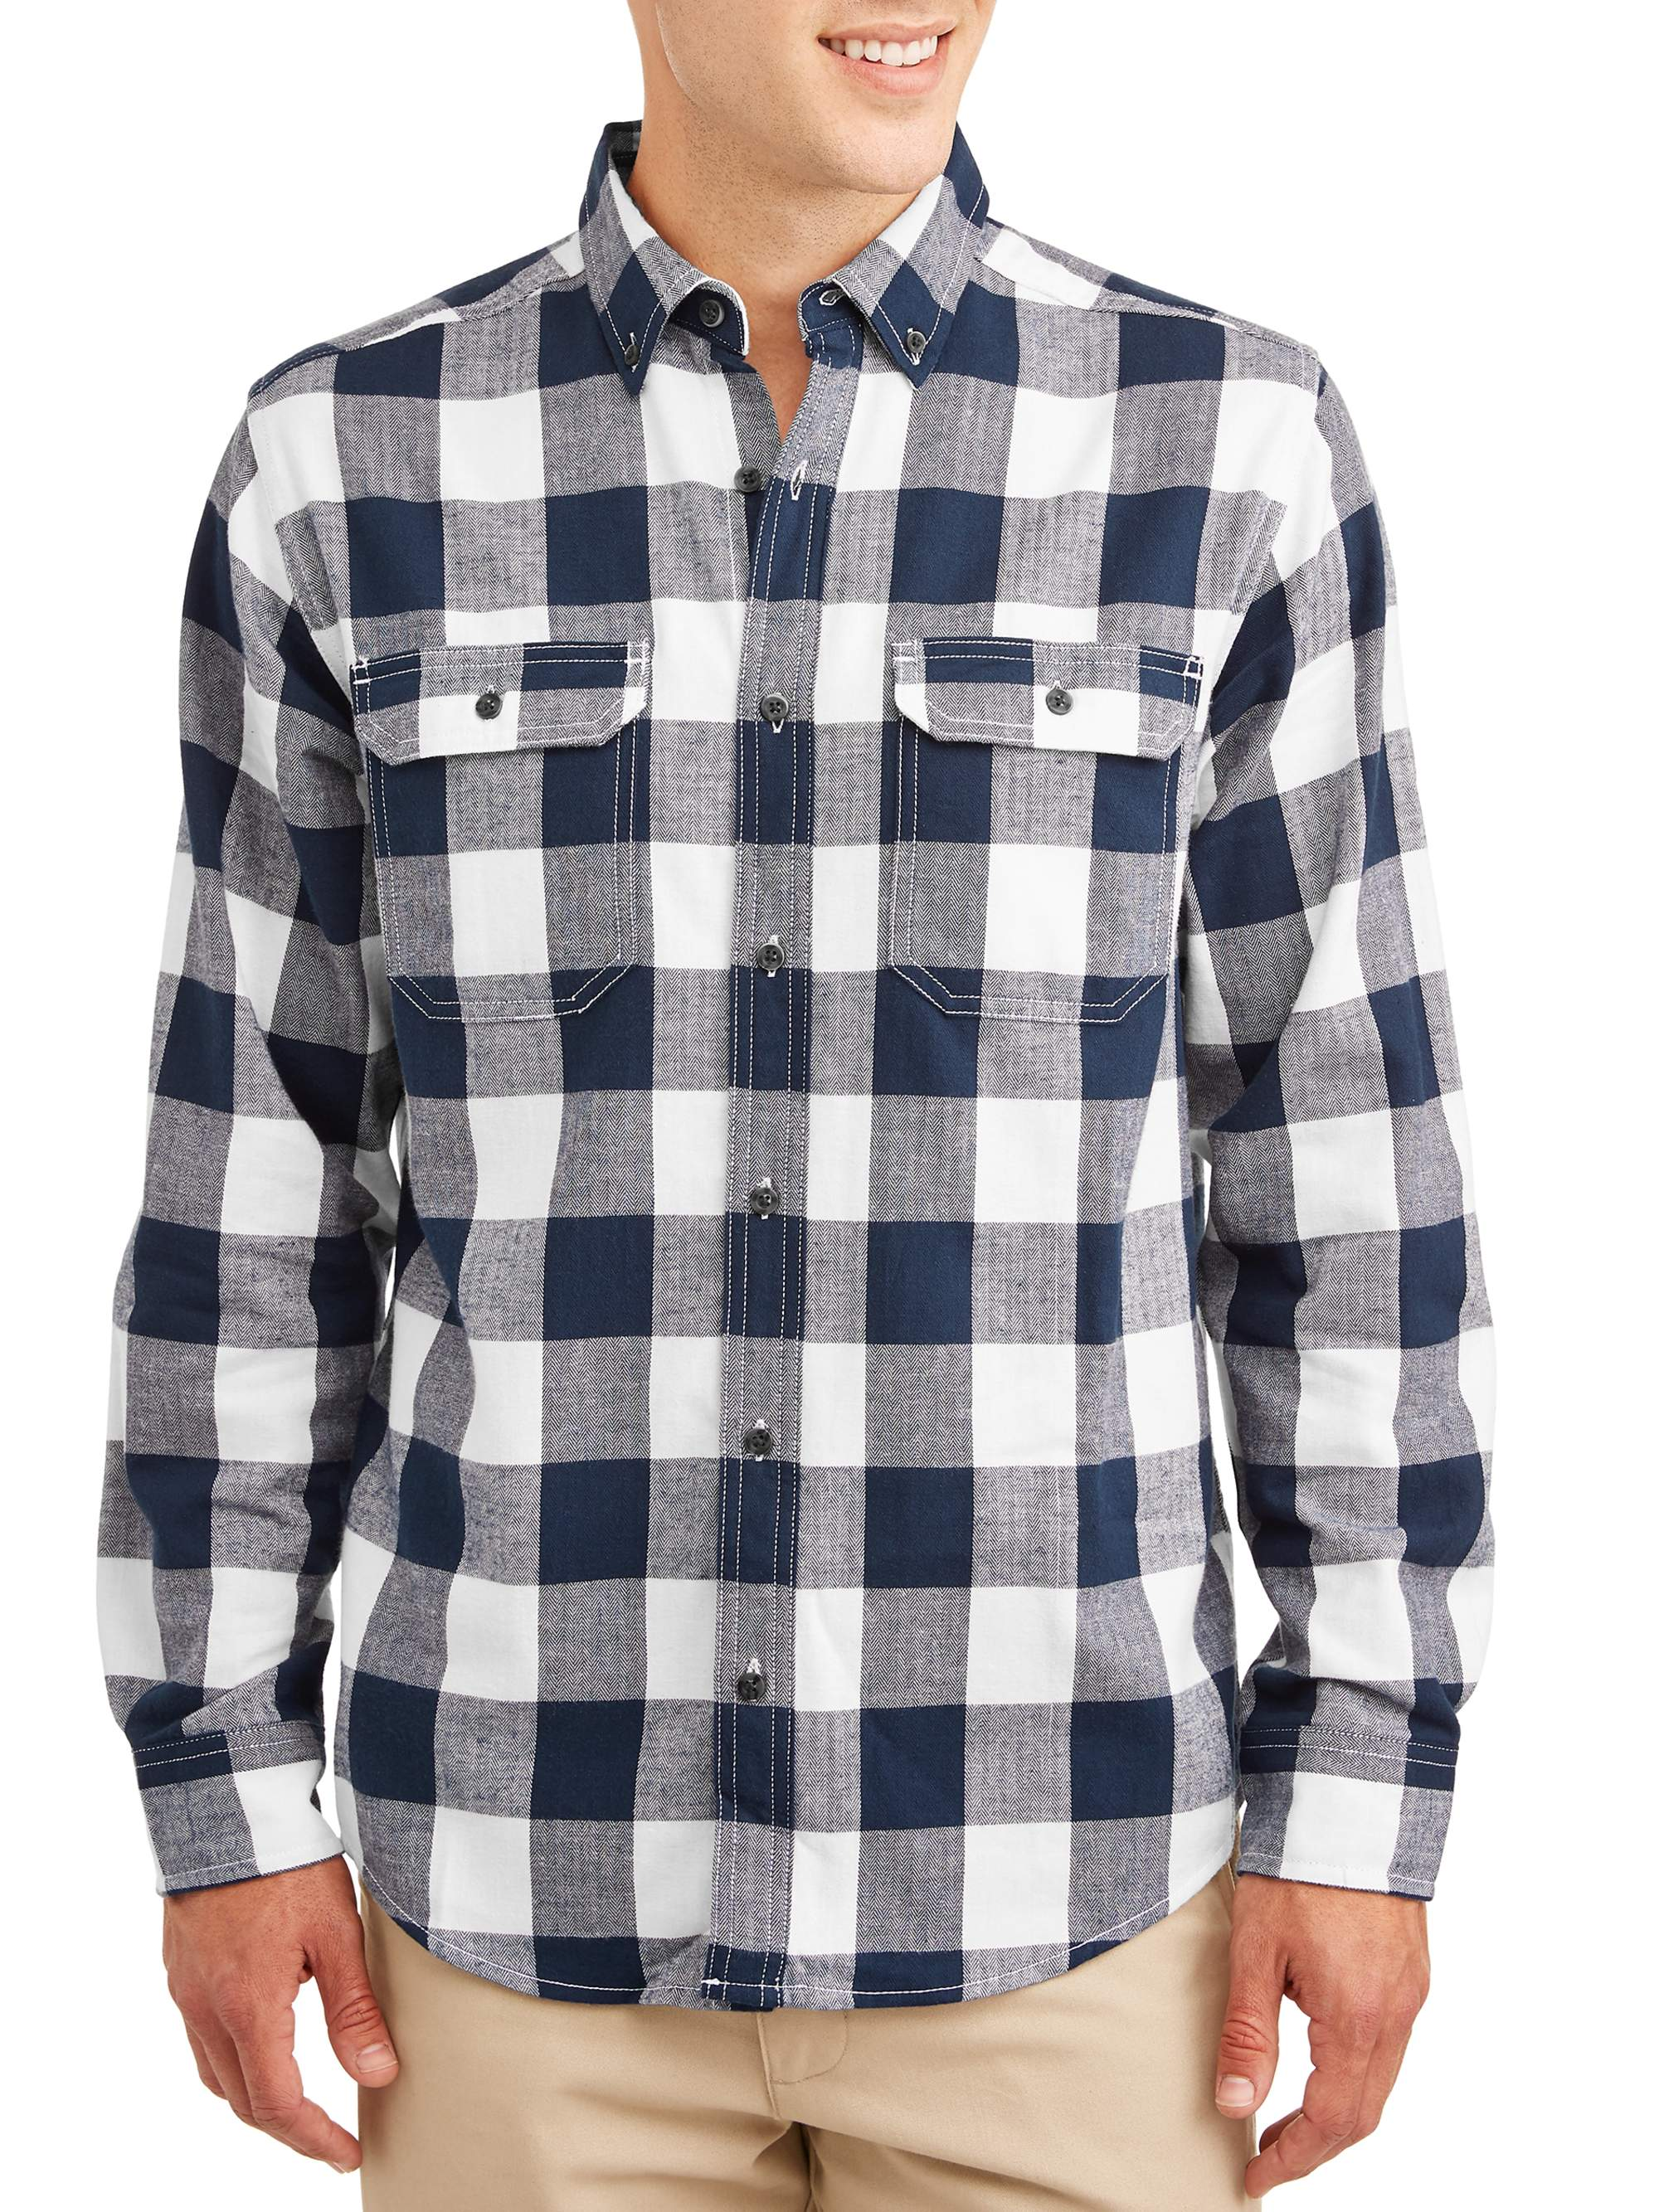 George men big and tall gray and black plaid button up dress shirt